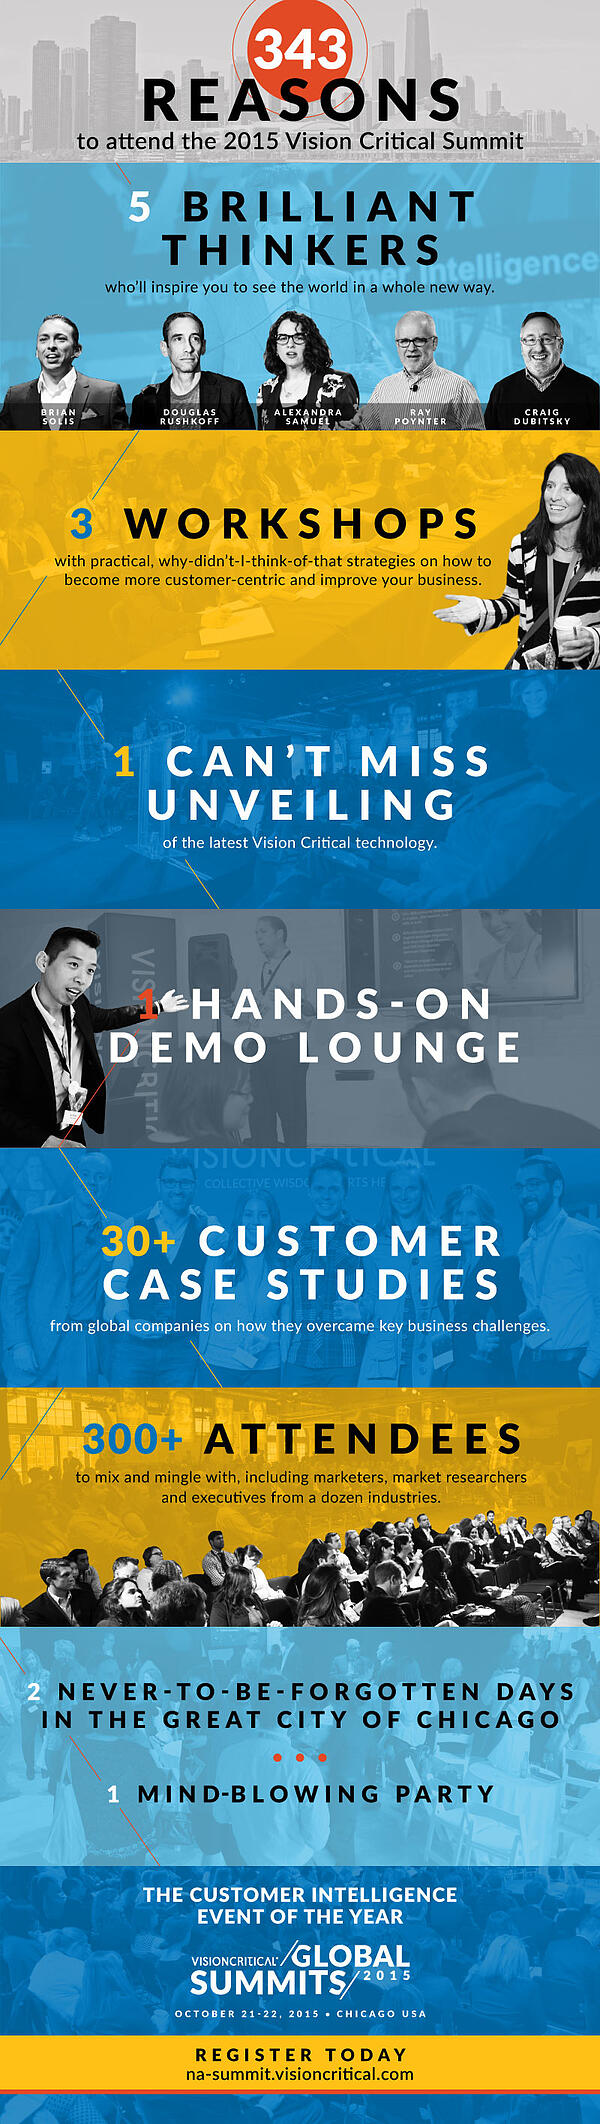 343 reasons to attend the 2015 Vision Critical Summit